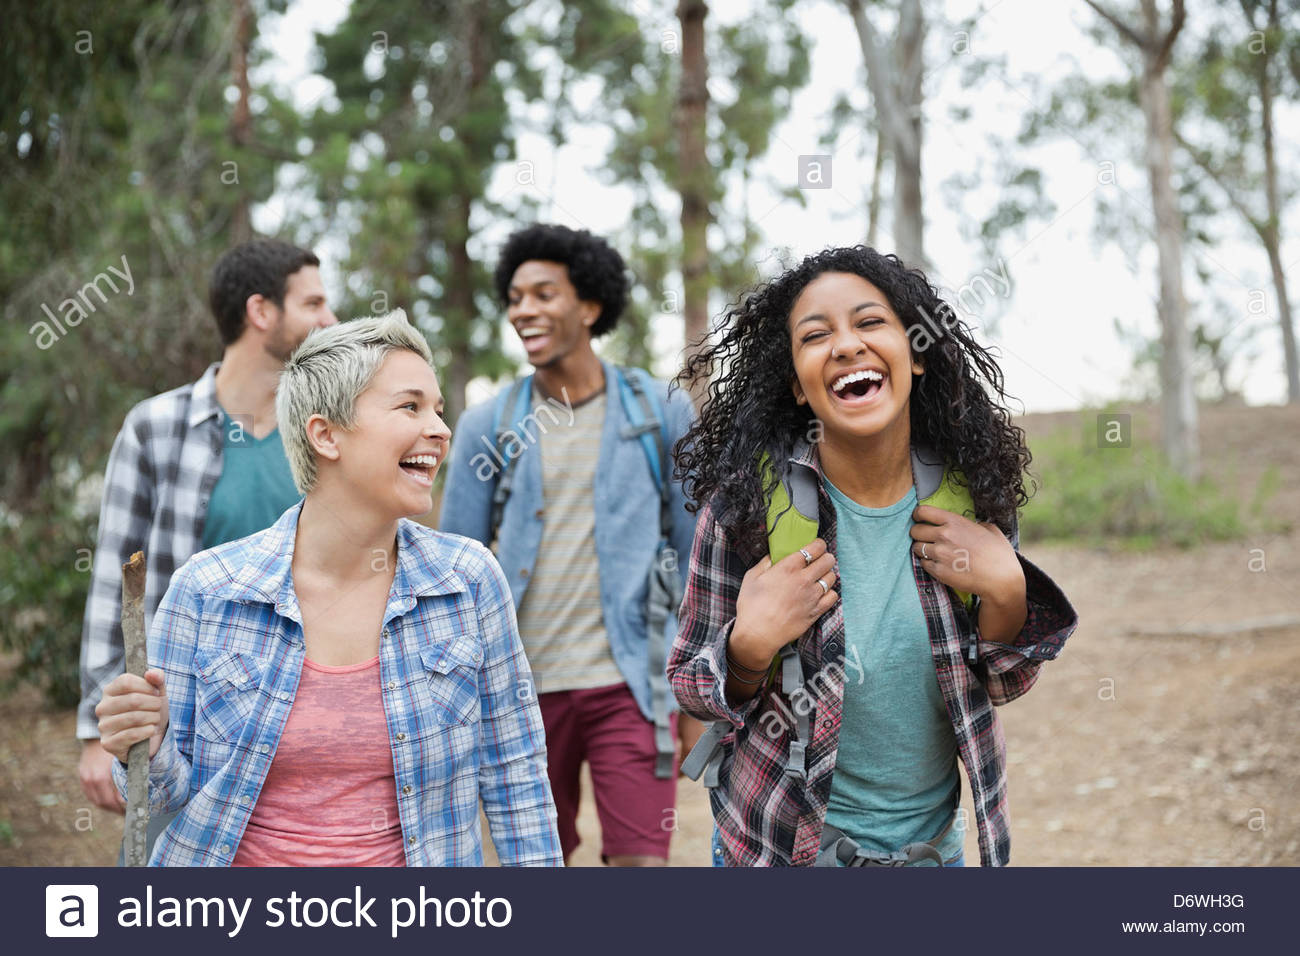 Cheerful multi-ethnic friends hiking together in forest - Stock Image